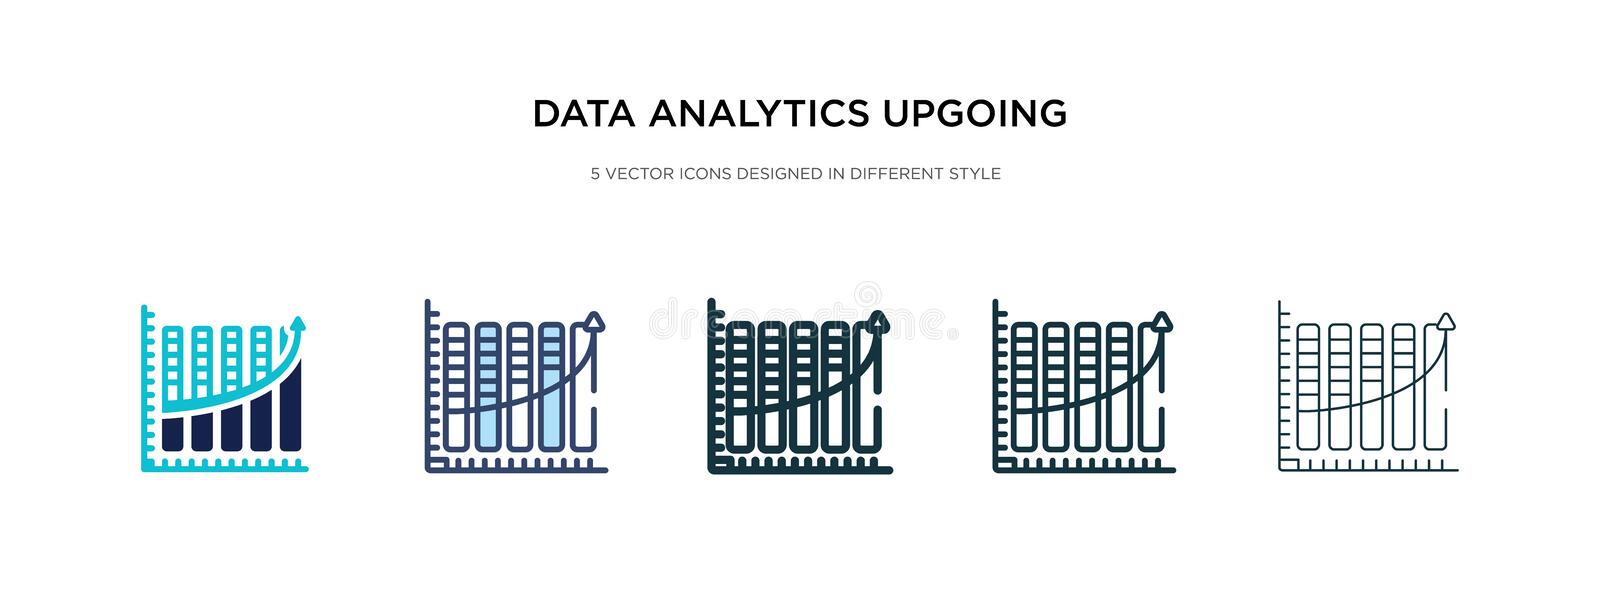 Data analytics upgoing bars chart icon in different style vector illustration. two colored and black data analytics upgoing bars. Chart vector icons designed in royalty free illustration